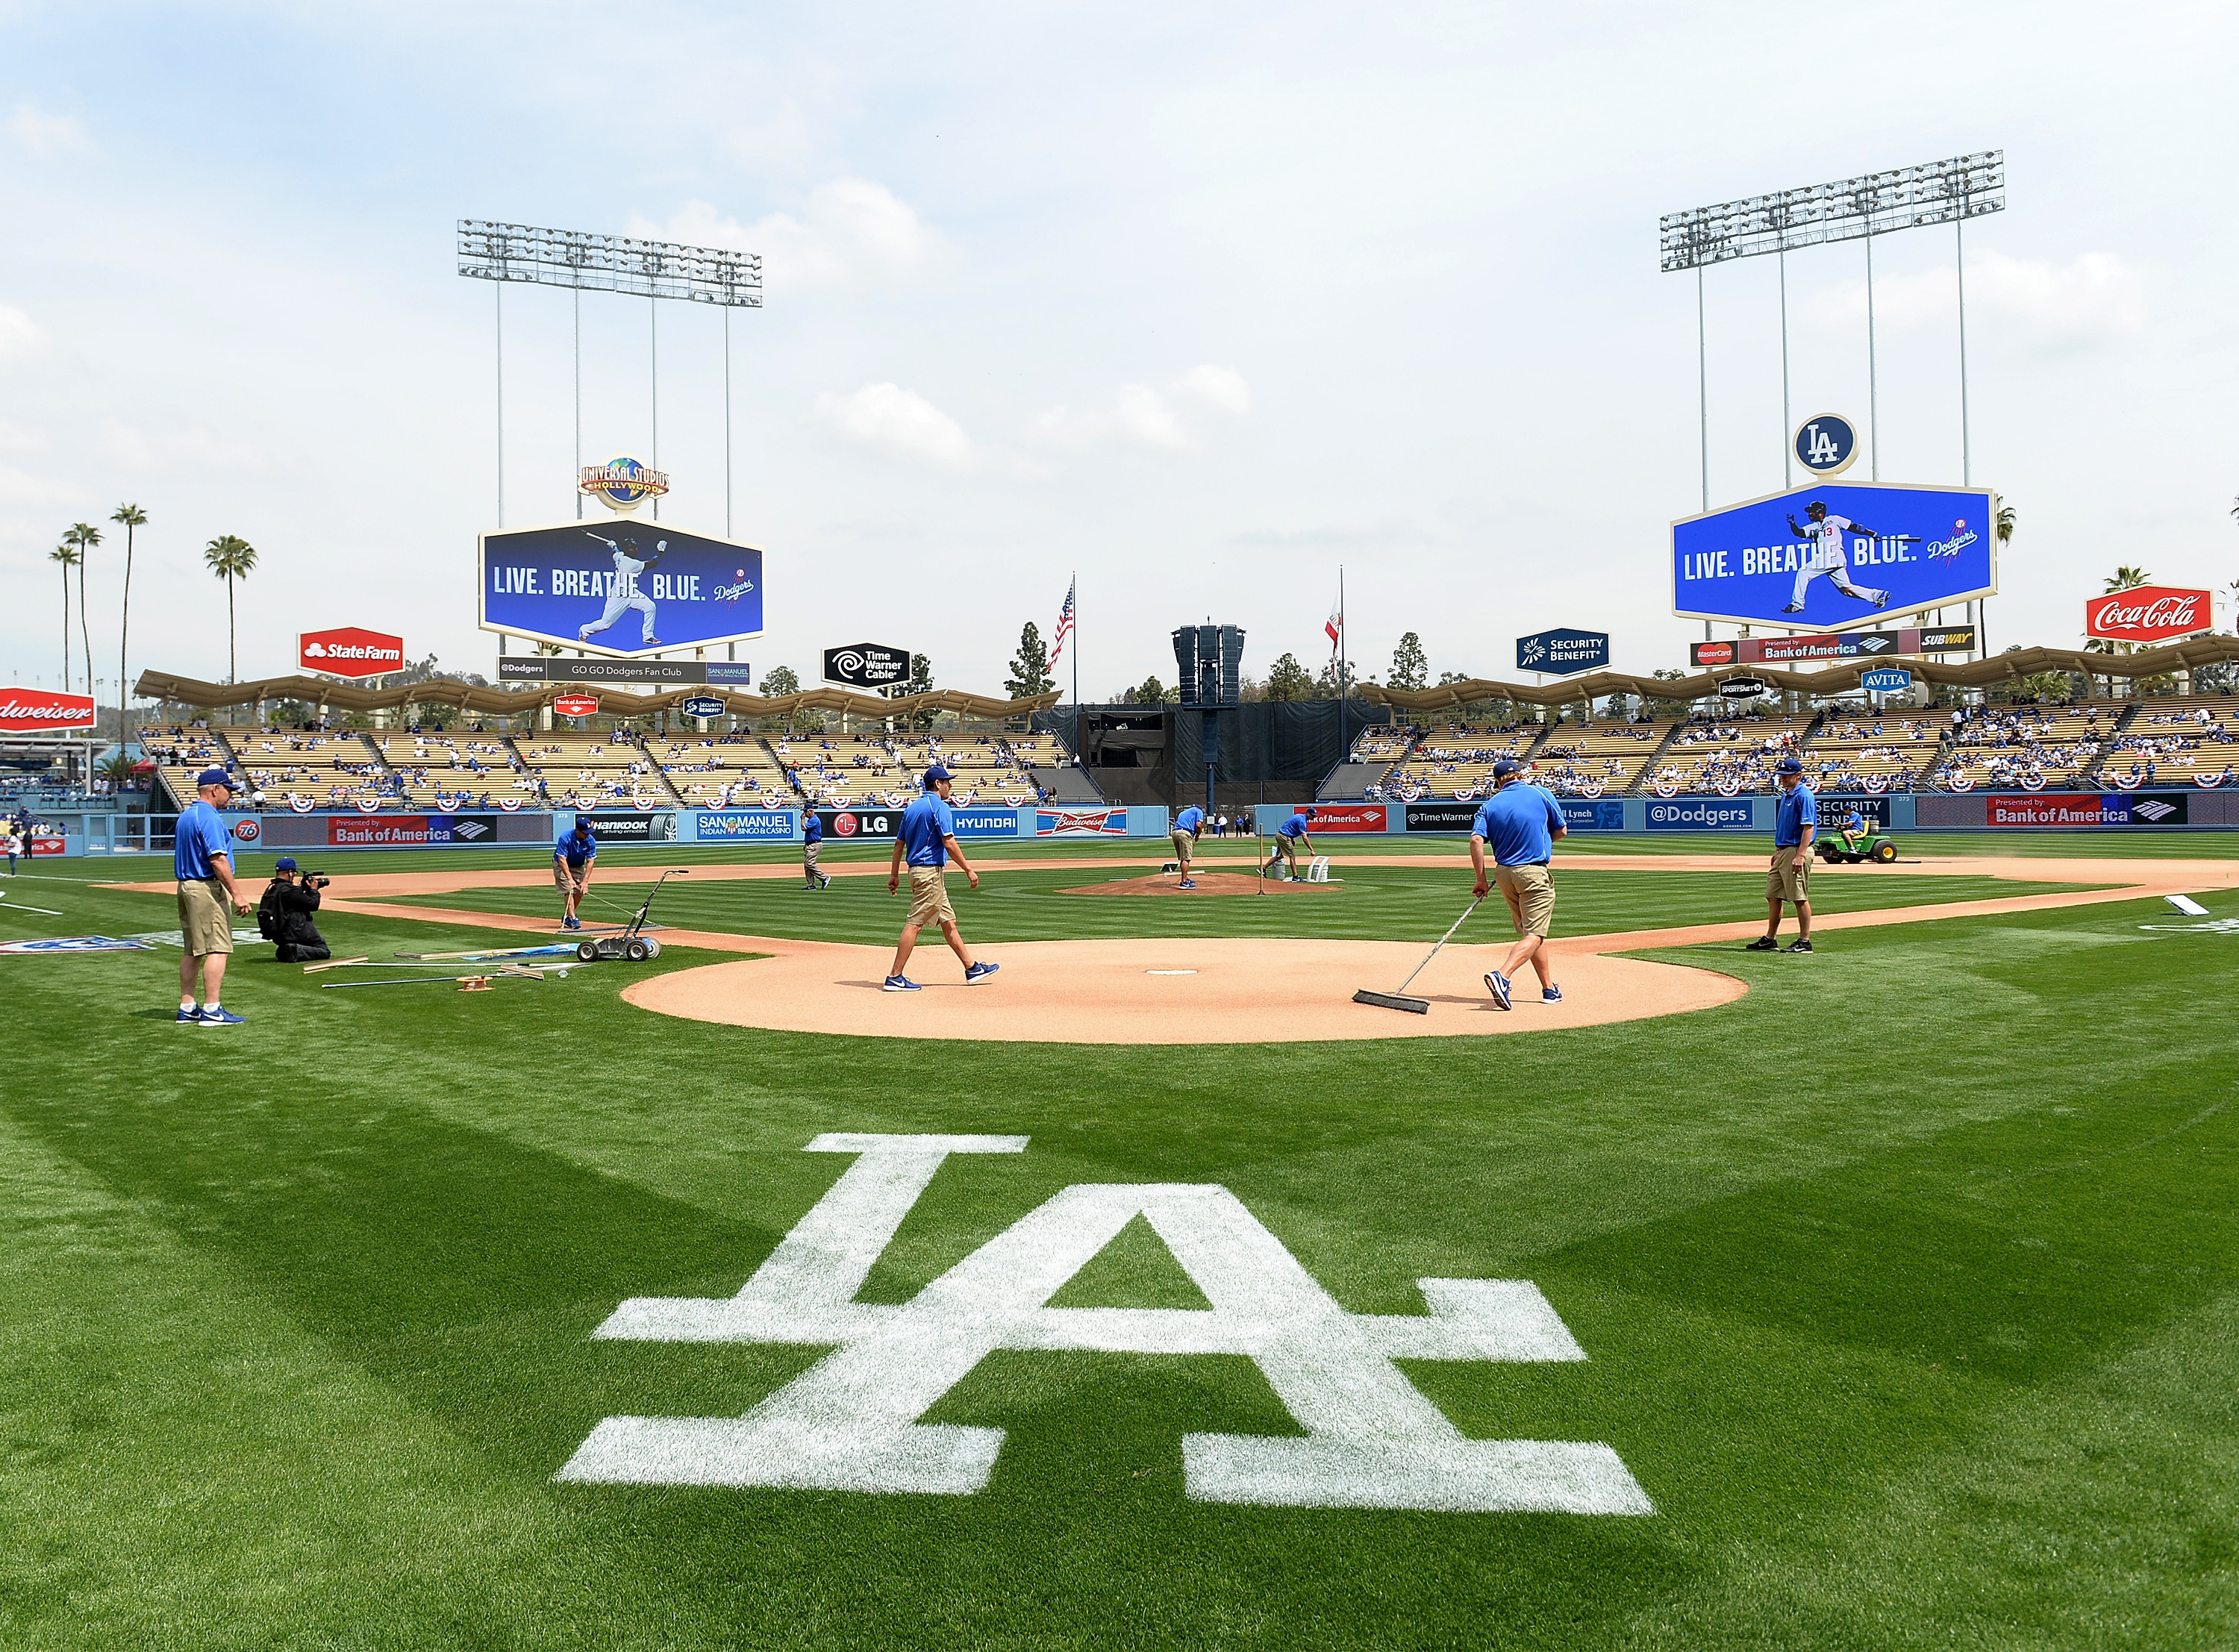 los angeles dodgers dating site Get the latest los angeles dodgers news, scores, stats, standings, rumors, and  more from espn  into october can they take a page from past pennant  winners with similar setbacks 18h  jansen making progress, no date for  return.